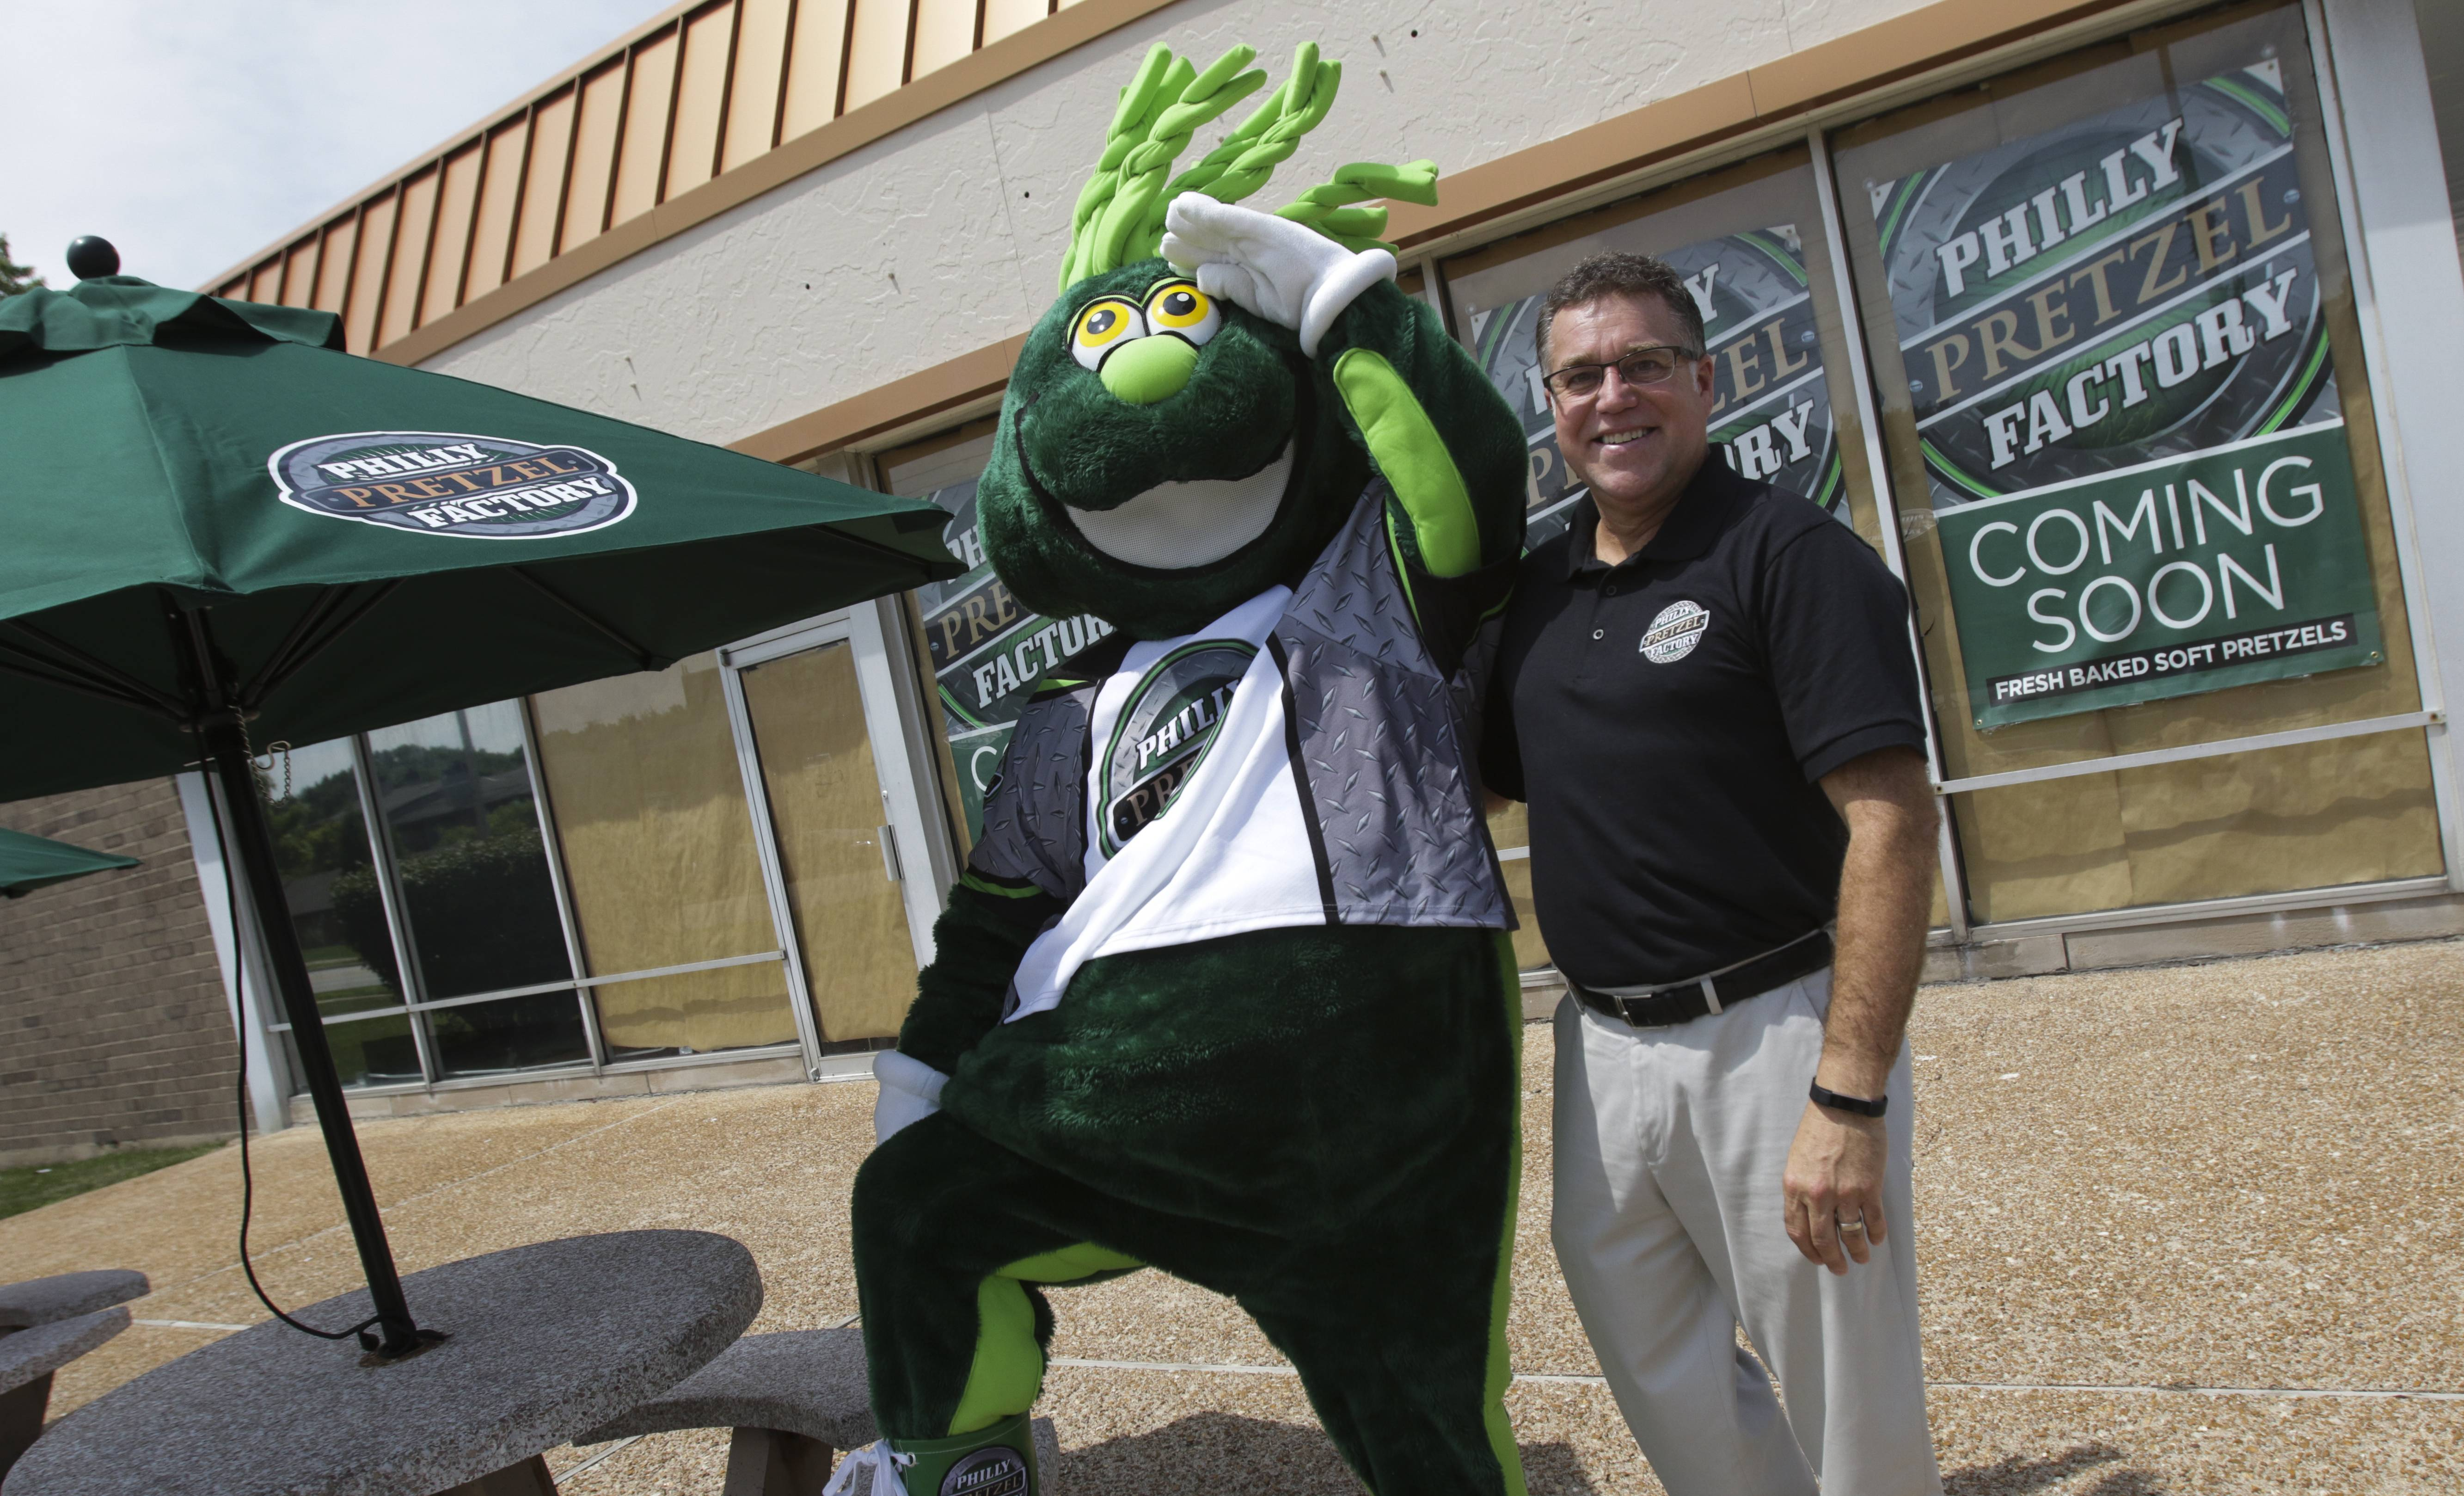 T.J. Berk plays the pretzel mascot Phil E. at Philly Pretzel Factory in Naperville, which franchise owner Tom Berk plans to open this month.